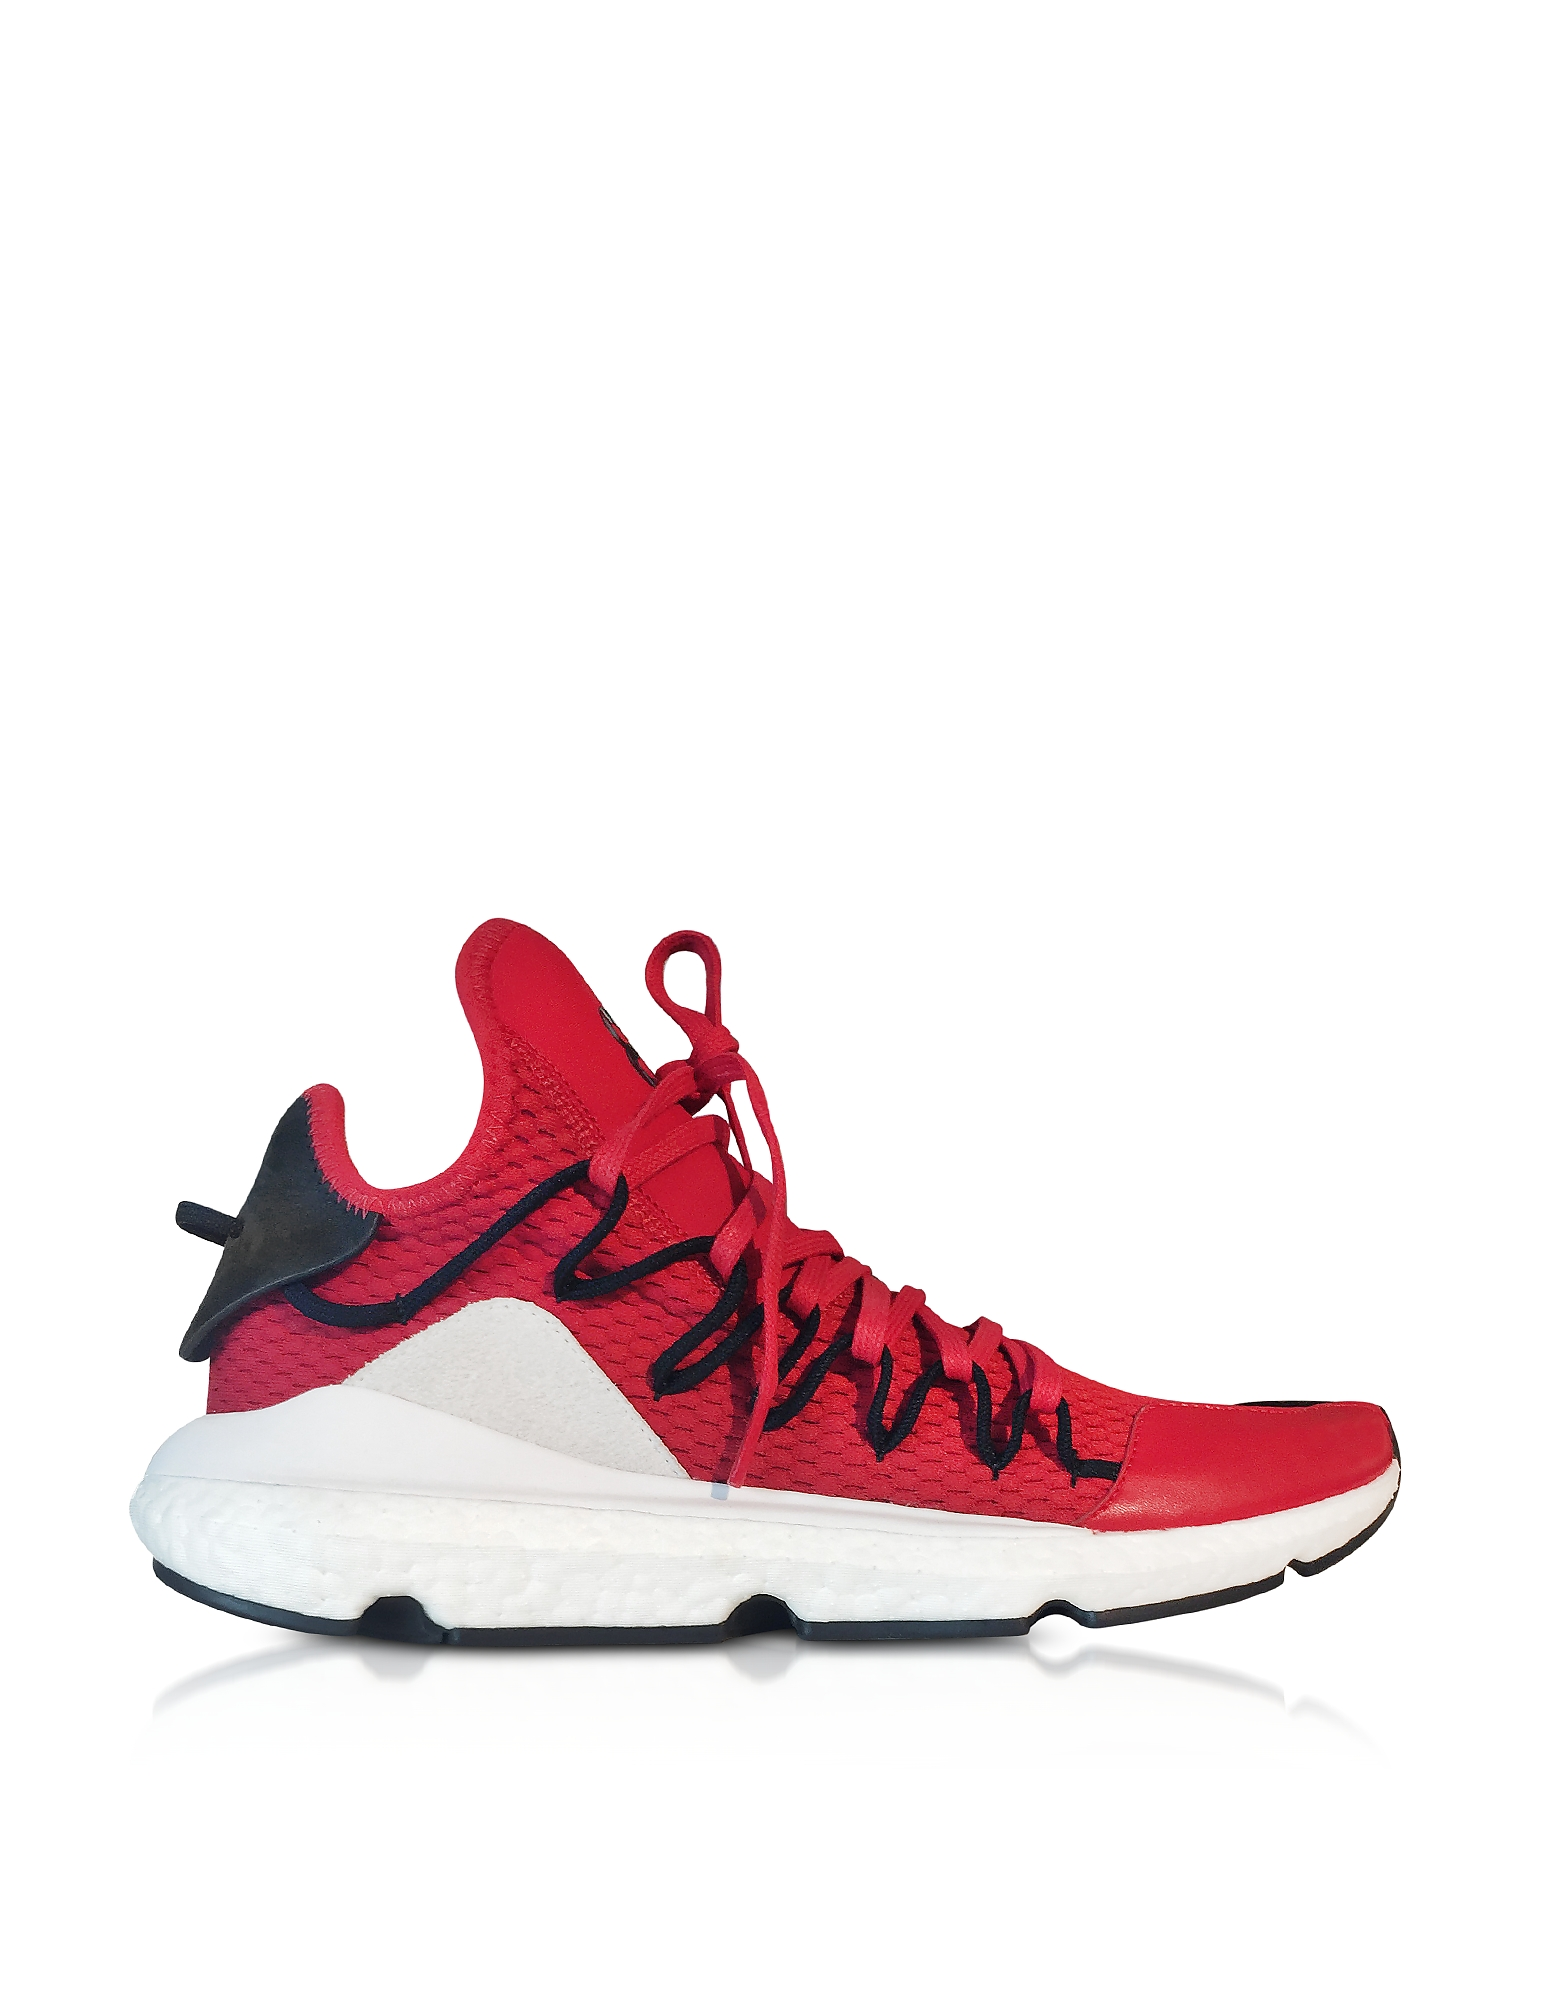 Y-3 Shoes, Chilli Pepper Y-3 Kusari Sneakers